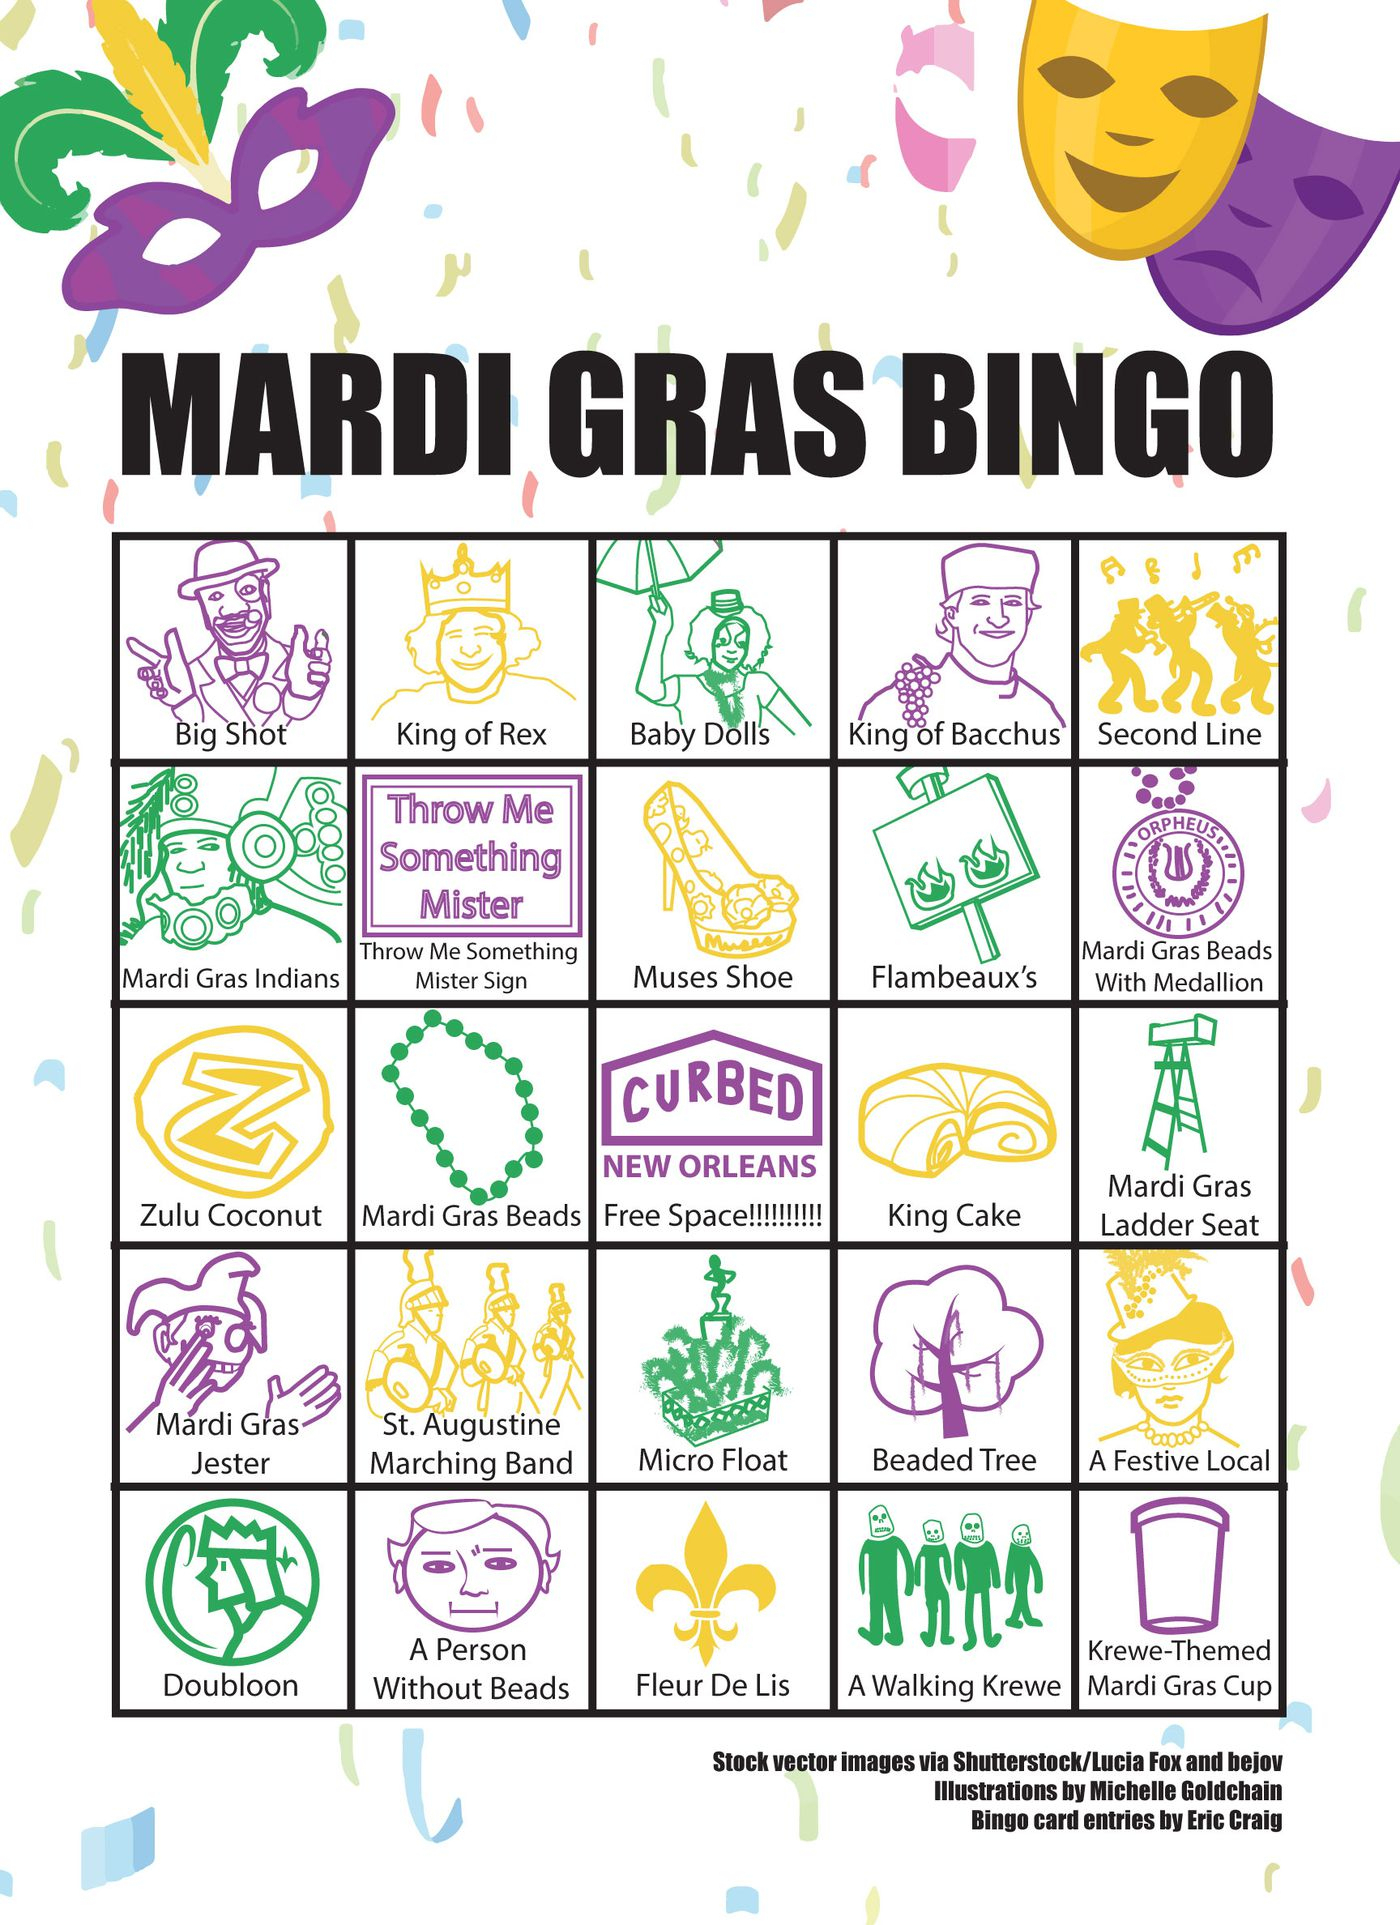 Celebrate Mardi Gras 2019 In New Orleans With This Bingo